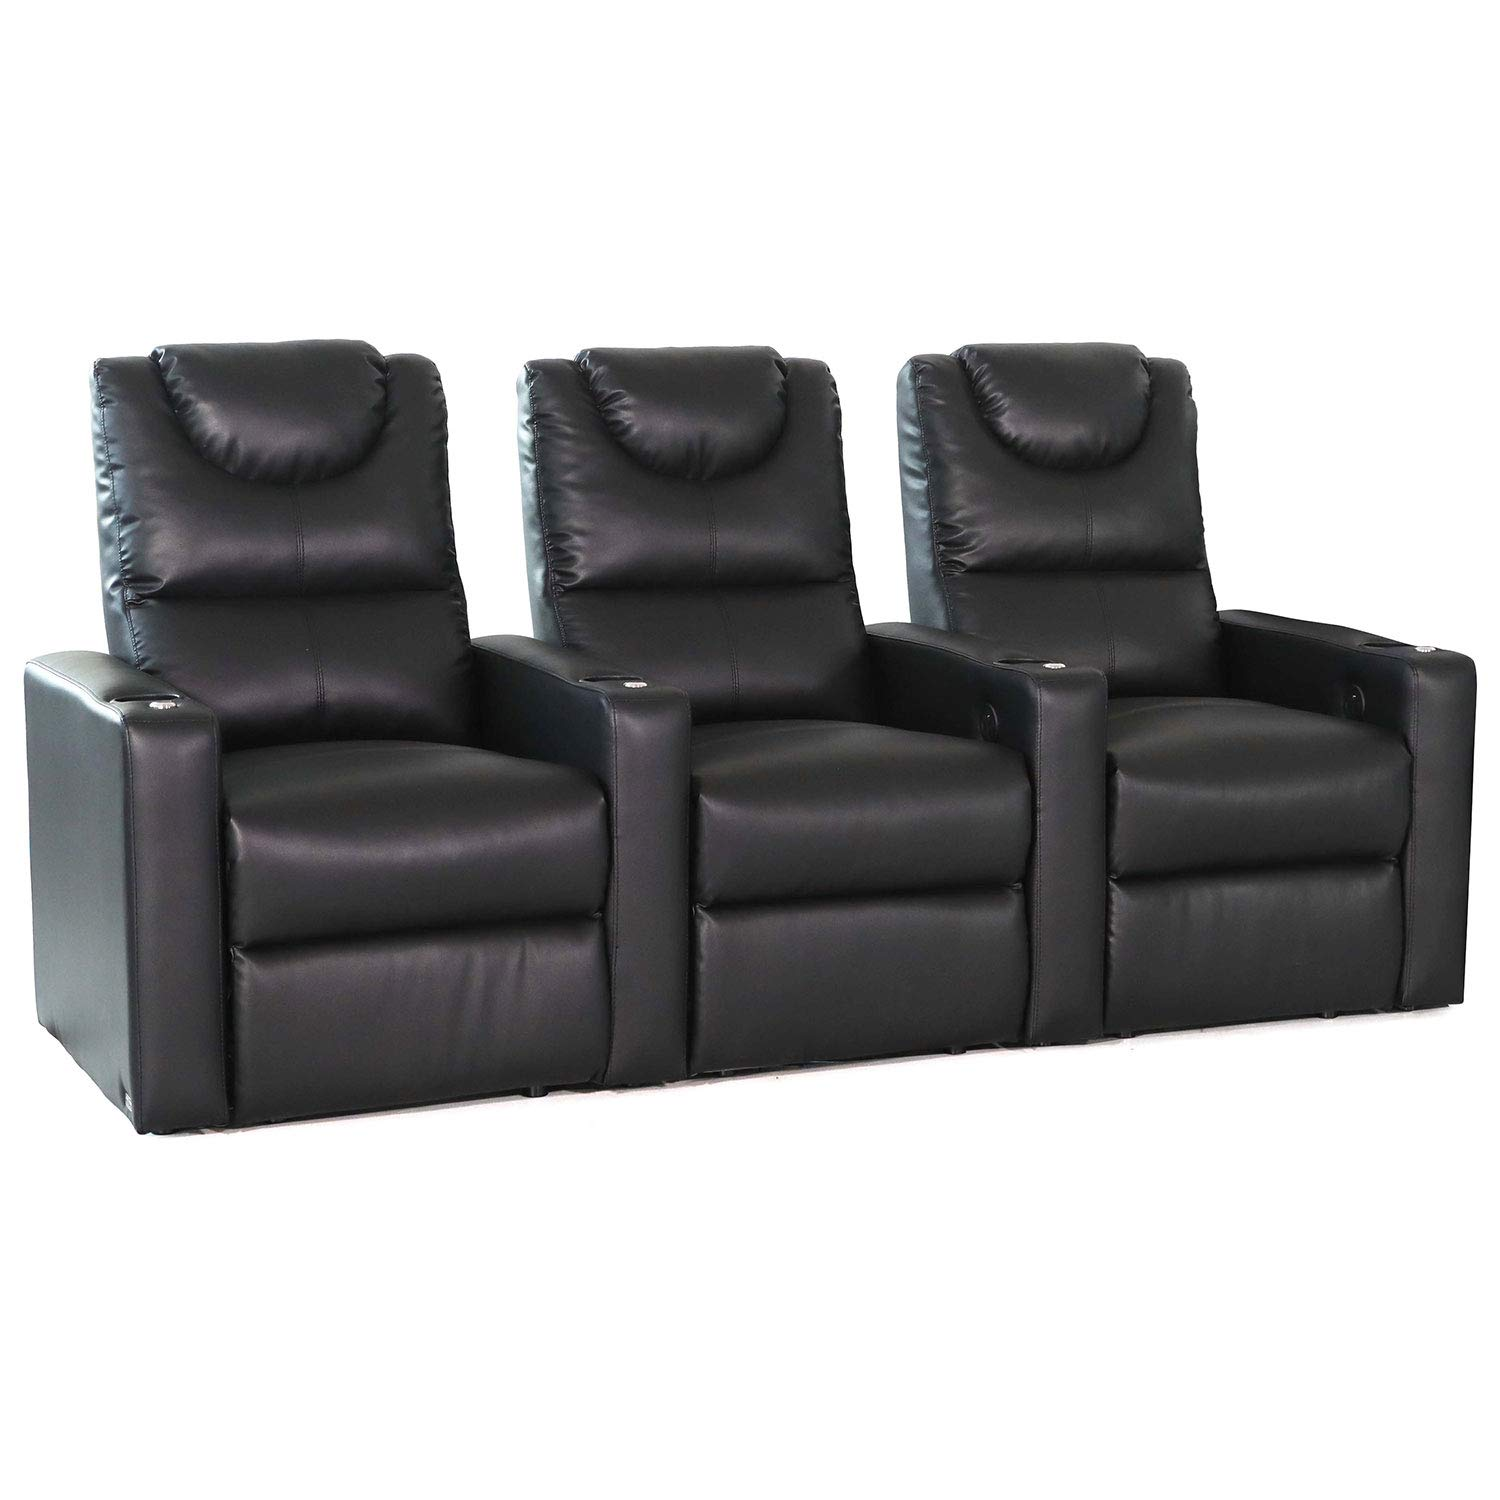 Octane Excel XS800 Black Bonded Home Theater Seating Set of 3